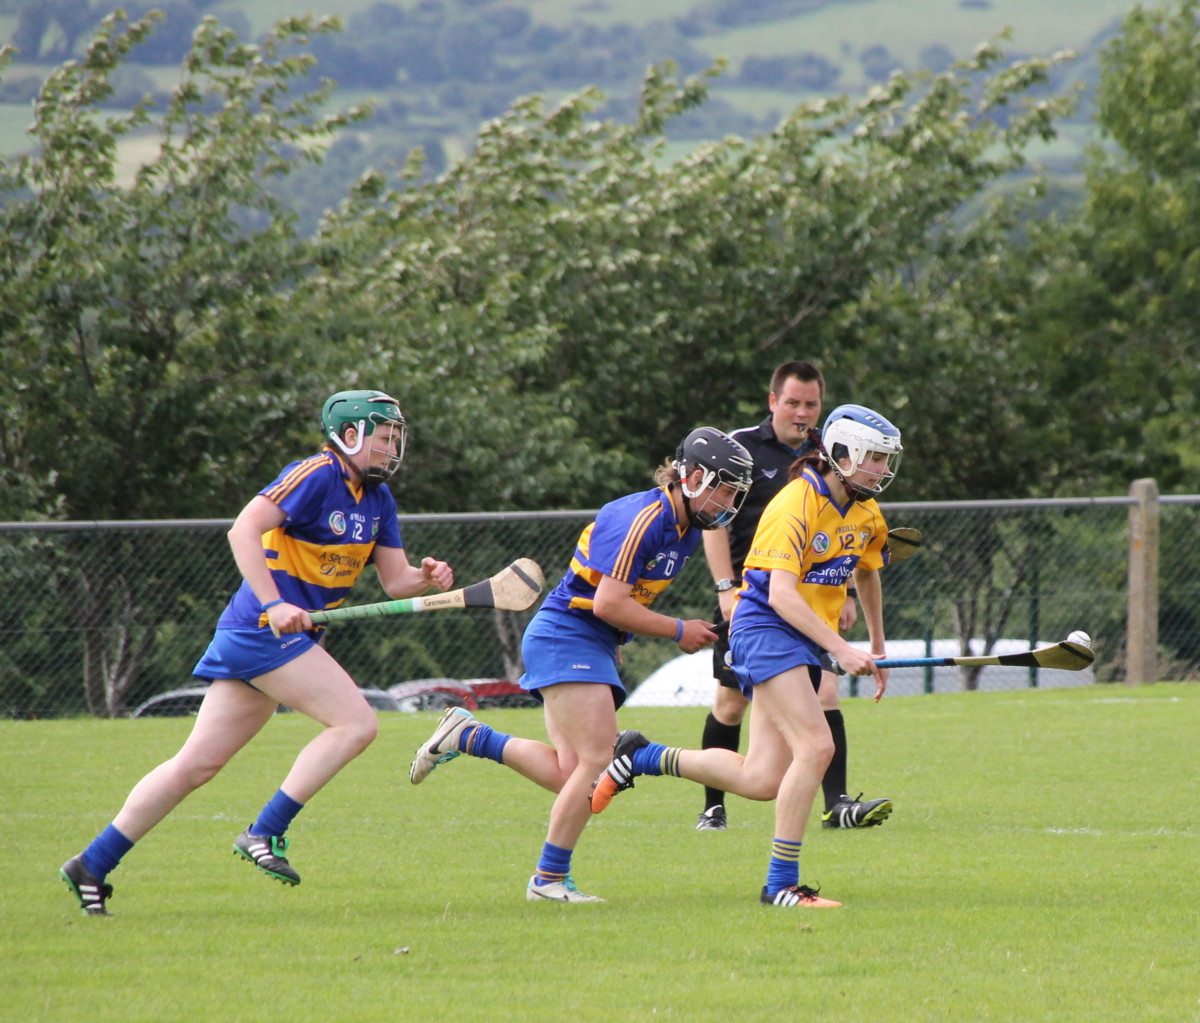 Clare's Michellle Caulfield being closely followed by Mairead Teehan & Gemma Grace. Picture: Caroline O'Keeffe